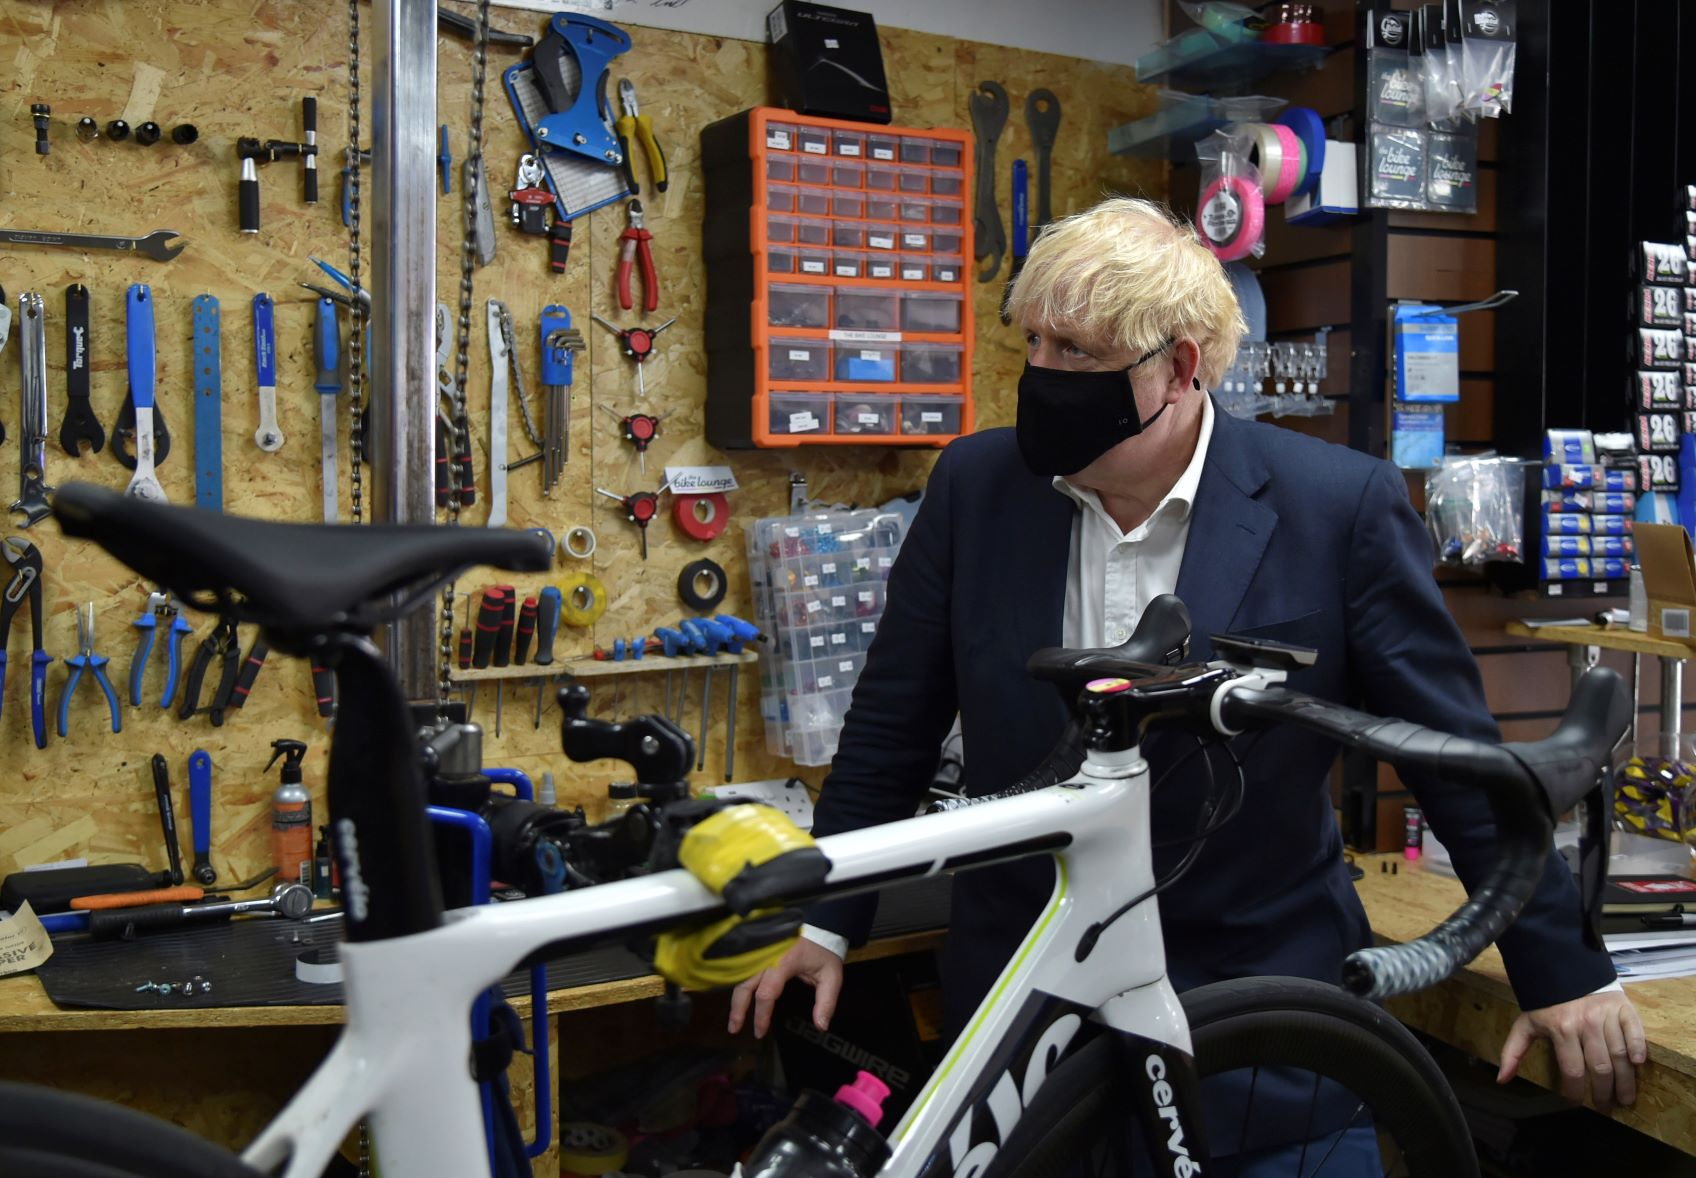 Boris Johnson Rides Made-In-India Cycle At Launch Of Health Programme